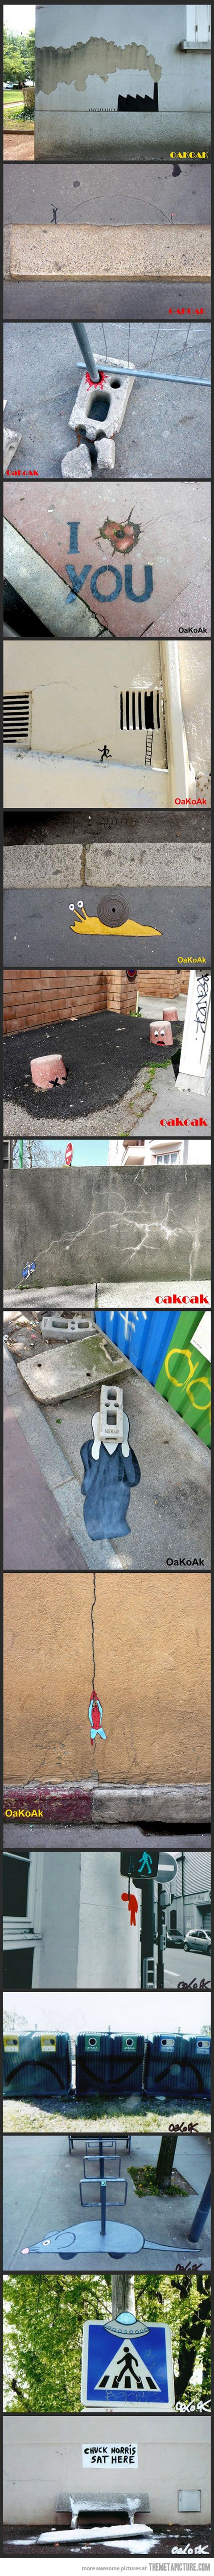 Brilliant OakOak    slippers Interventions by Art   Street ultra Urban Intervention  Art fitflop lounge Urban and